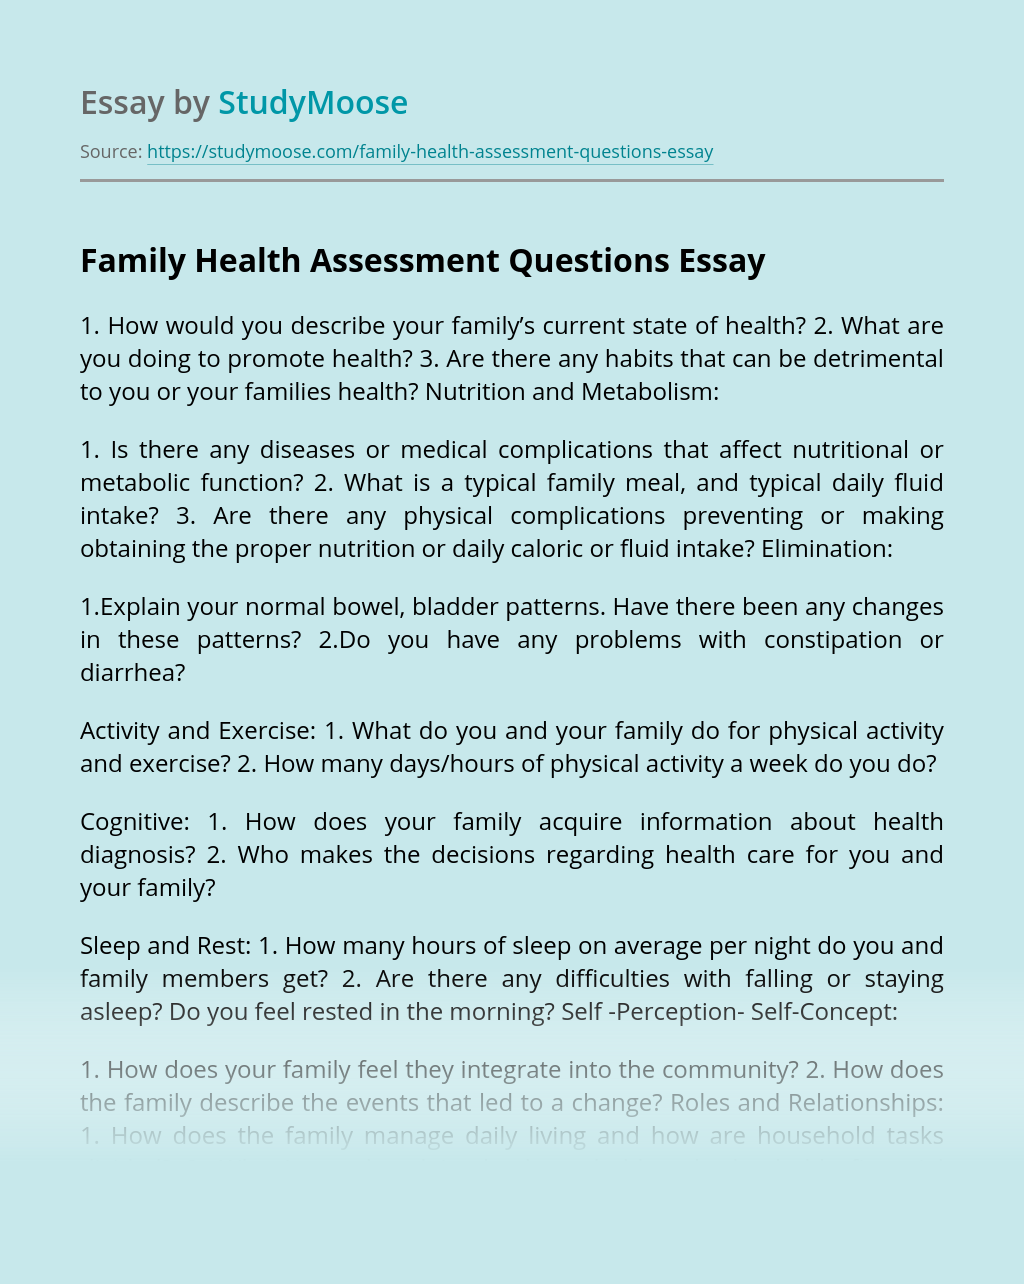 Family Health Assessment Questions